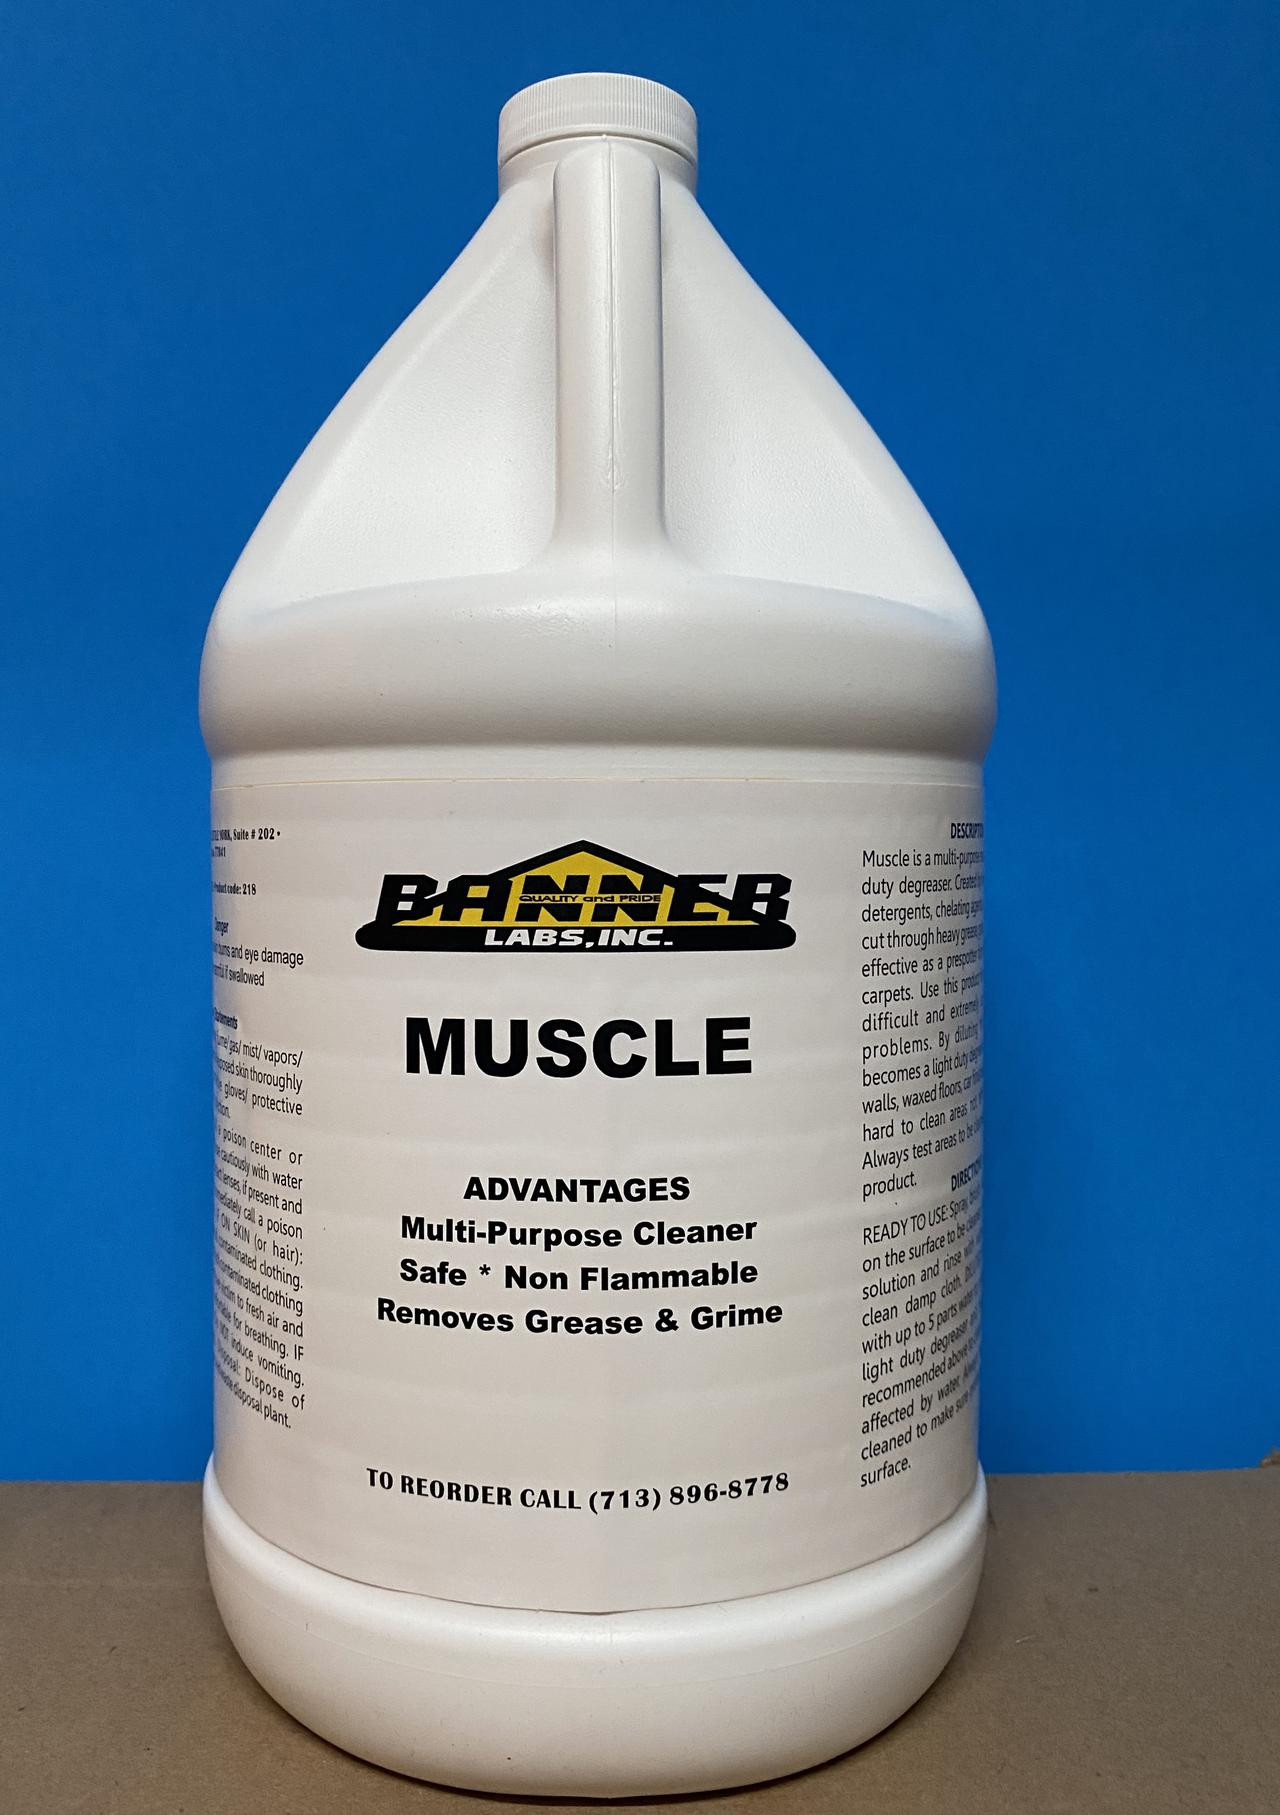 all purpose cleaners and heavy duty degreasers from Banner Labs, Inc